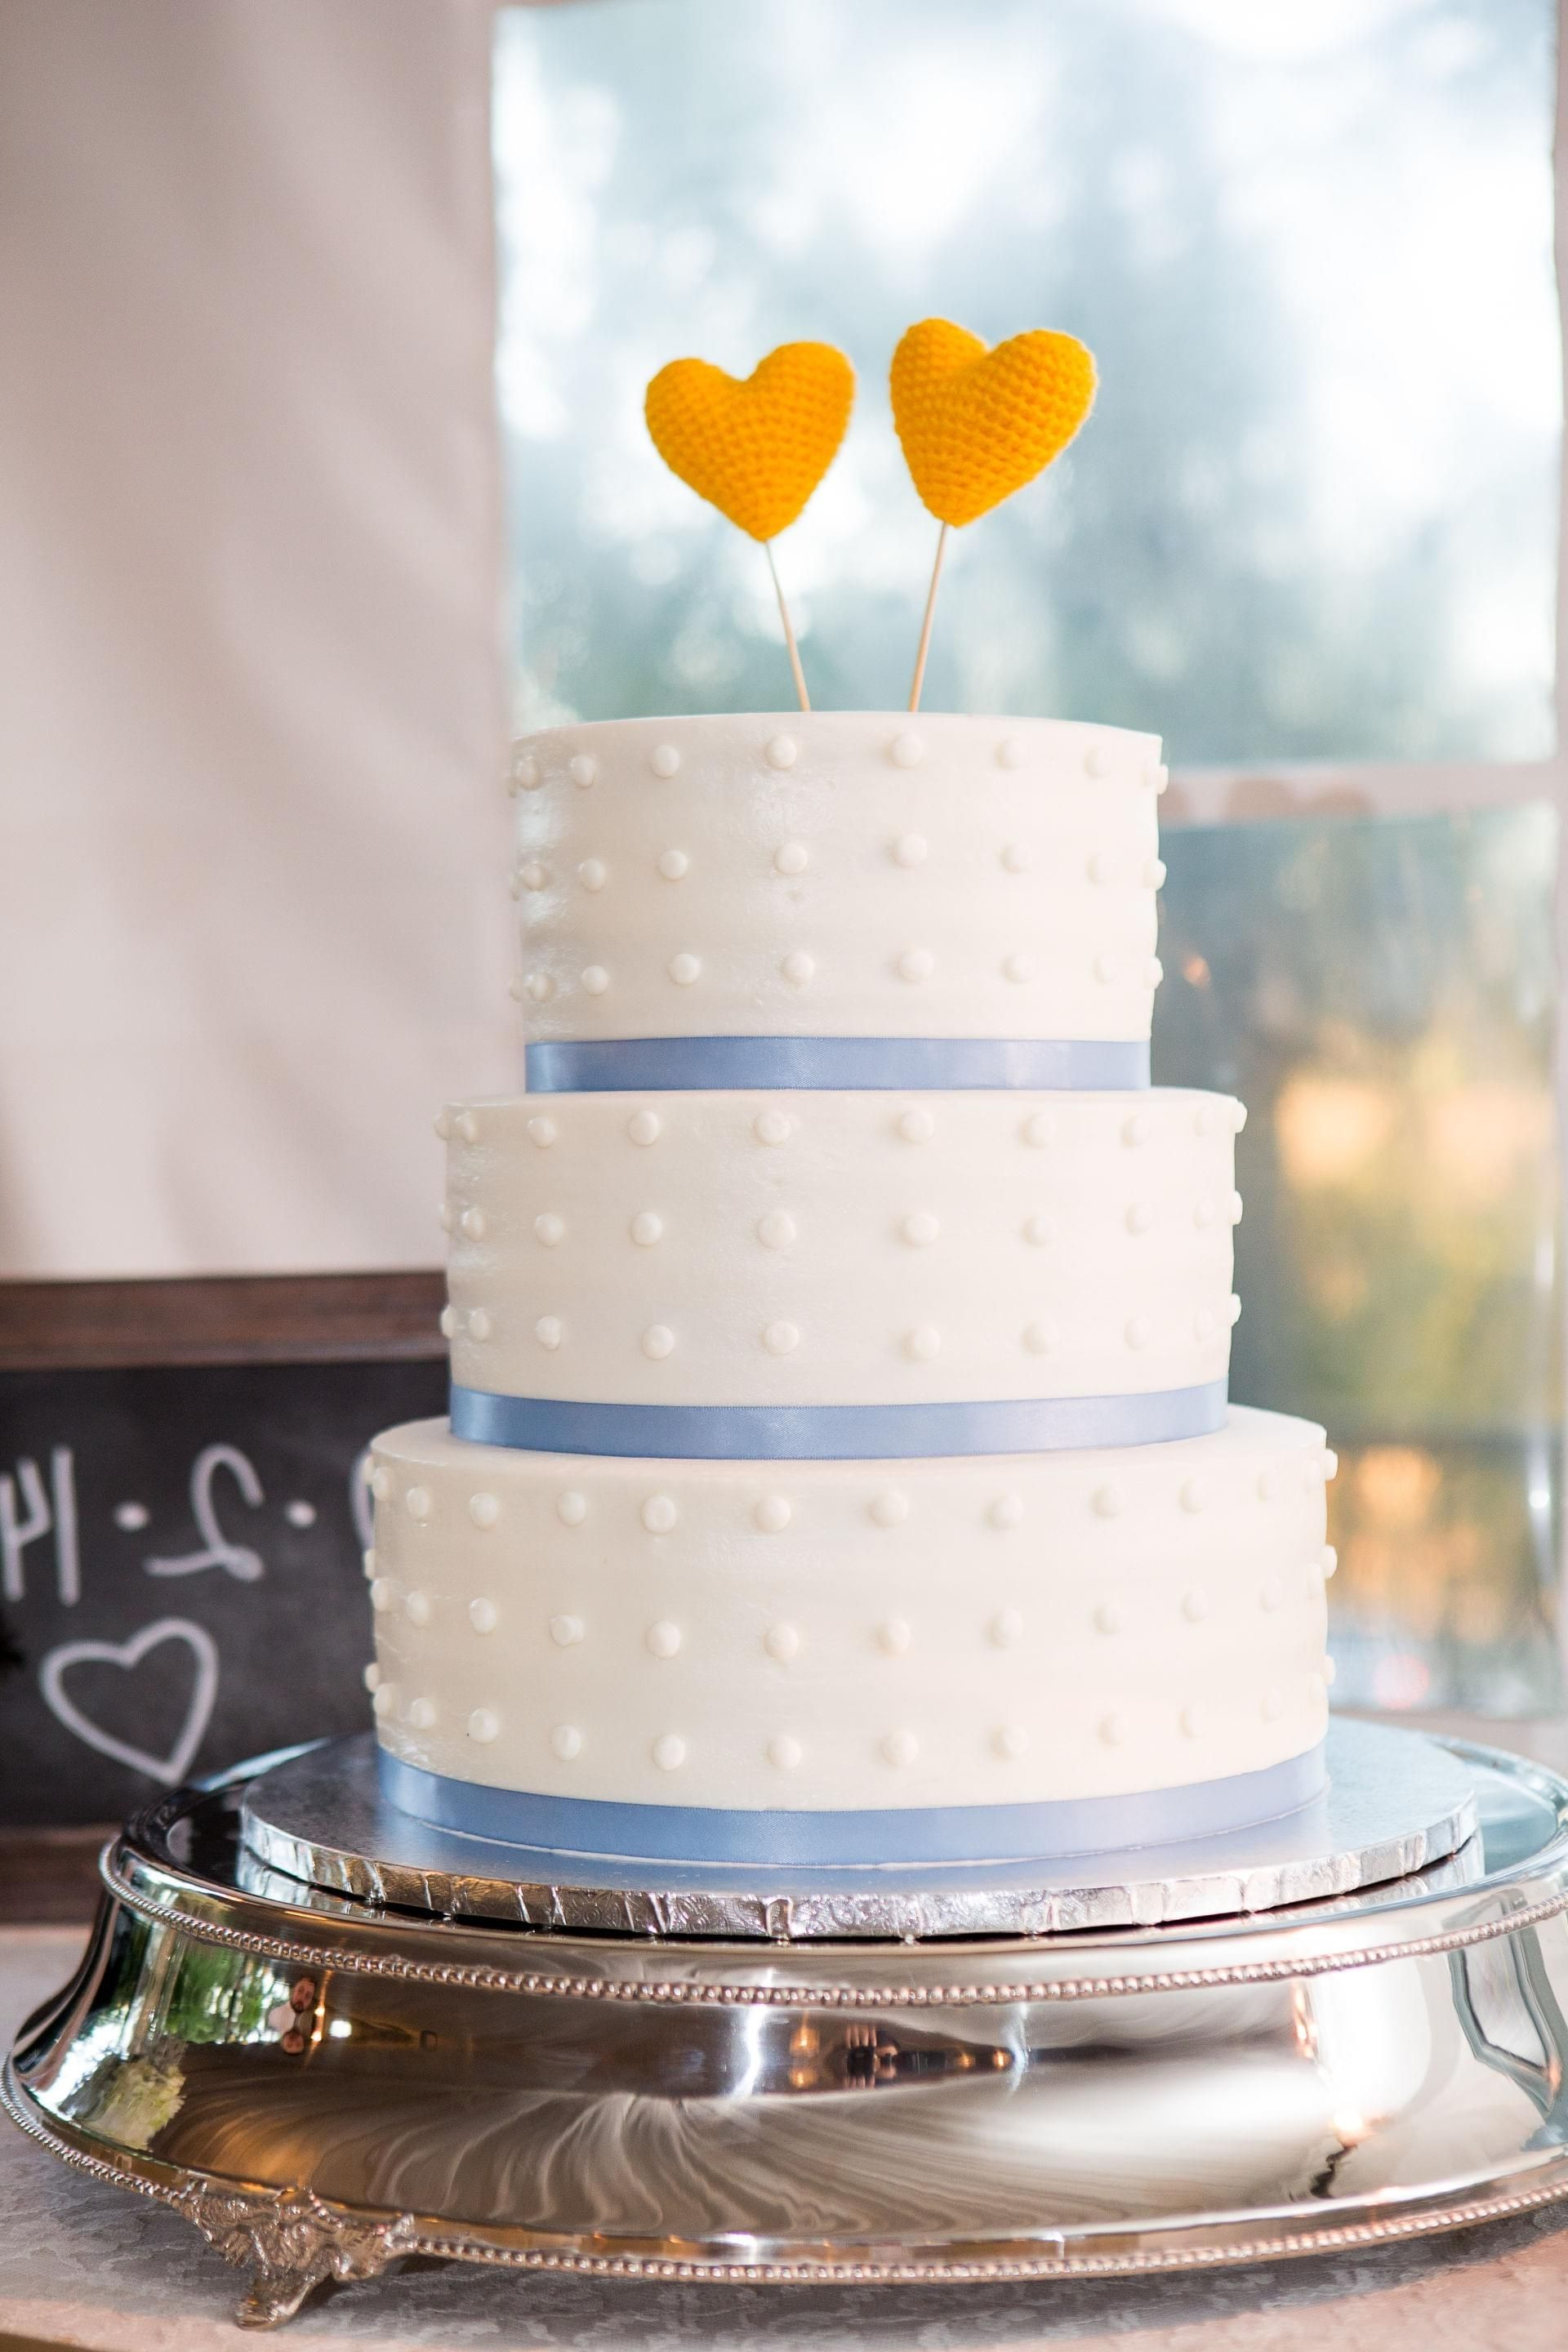 Affordable Wedding Cakes In San Diego Ca   Wedding Dress   Pinterest     Affordable Wedding Cakes In San Diego Ca